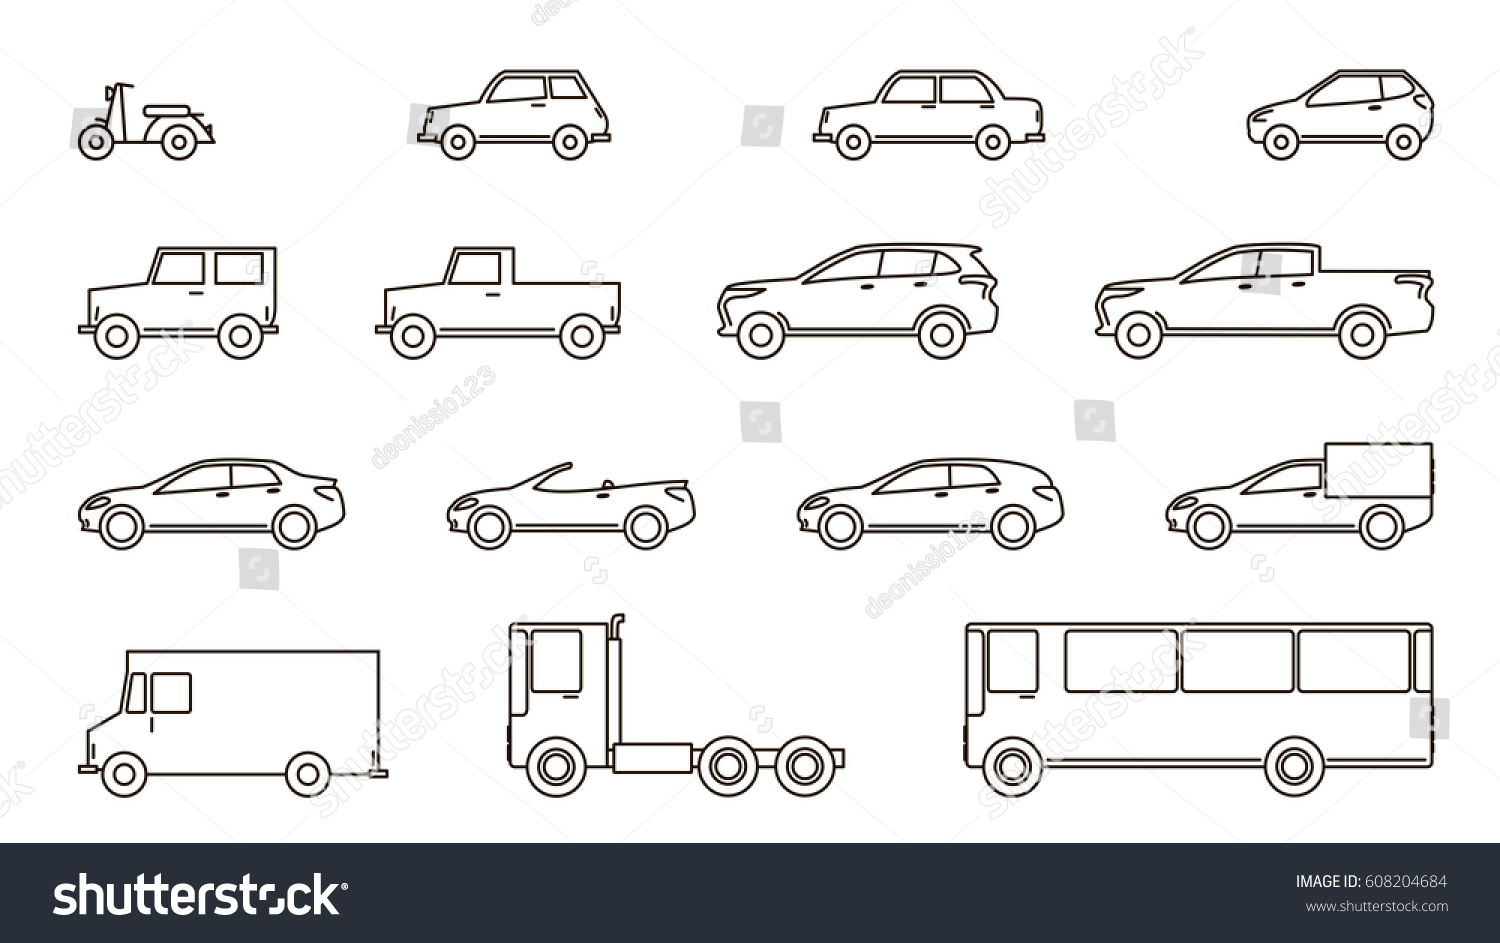 Car Icons Cars Lines Flat Design Stock Vector 608204684 - Shutterstock